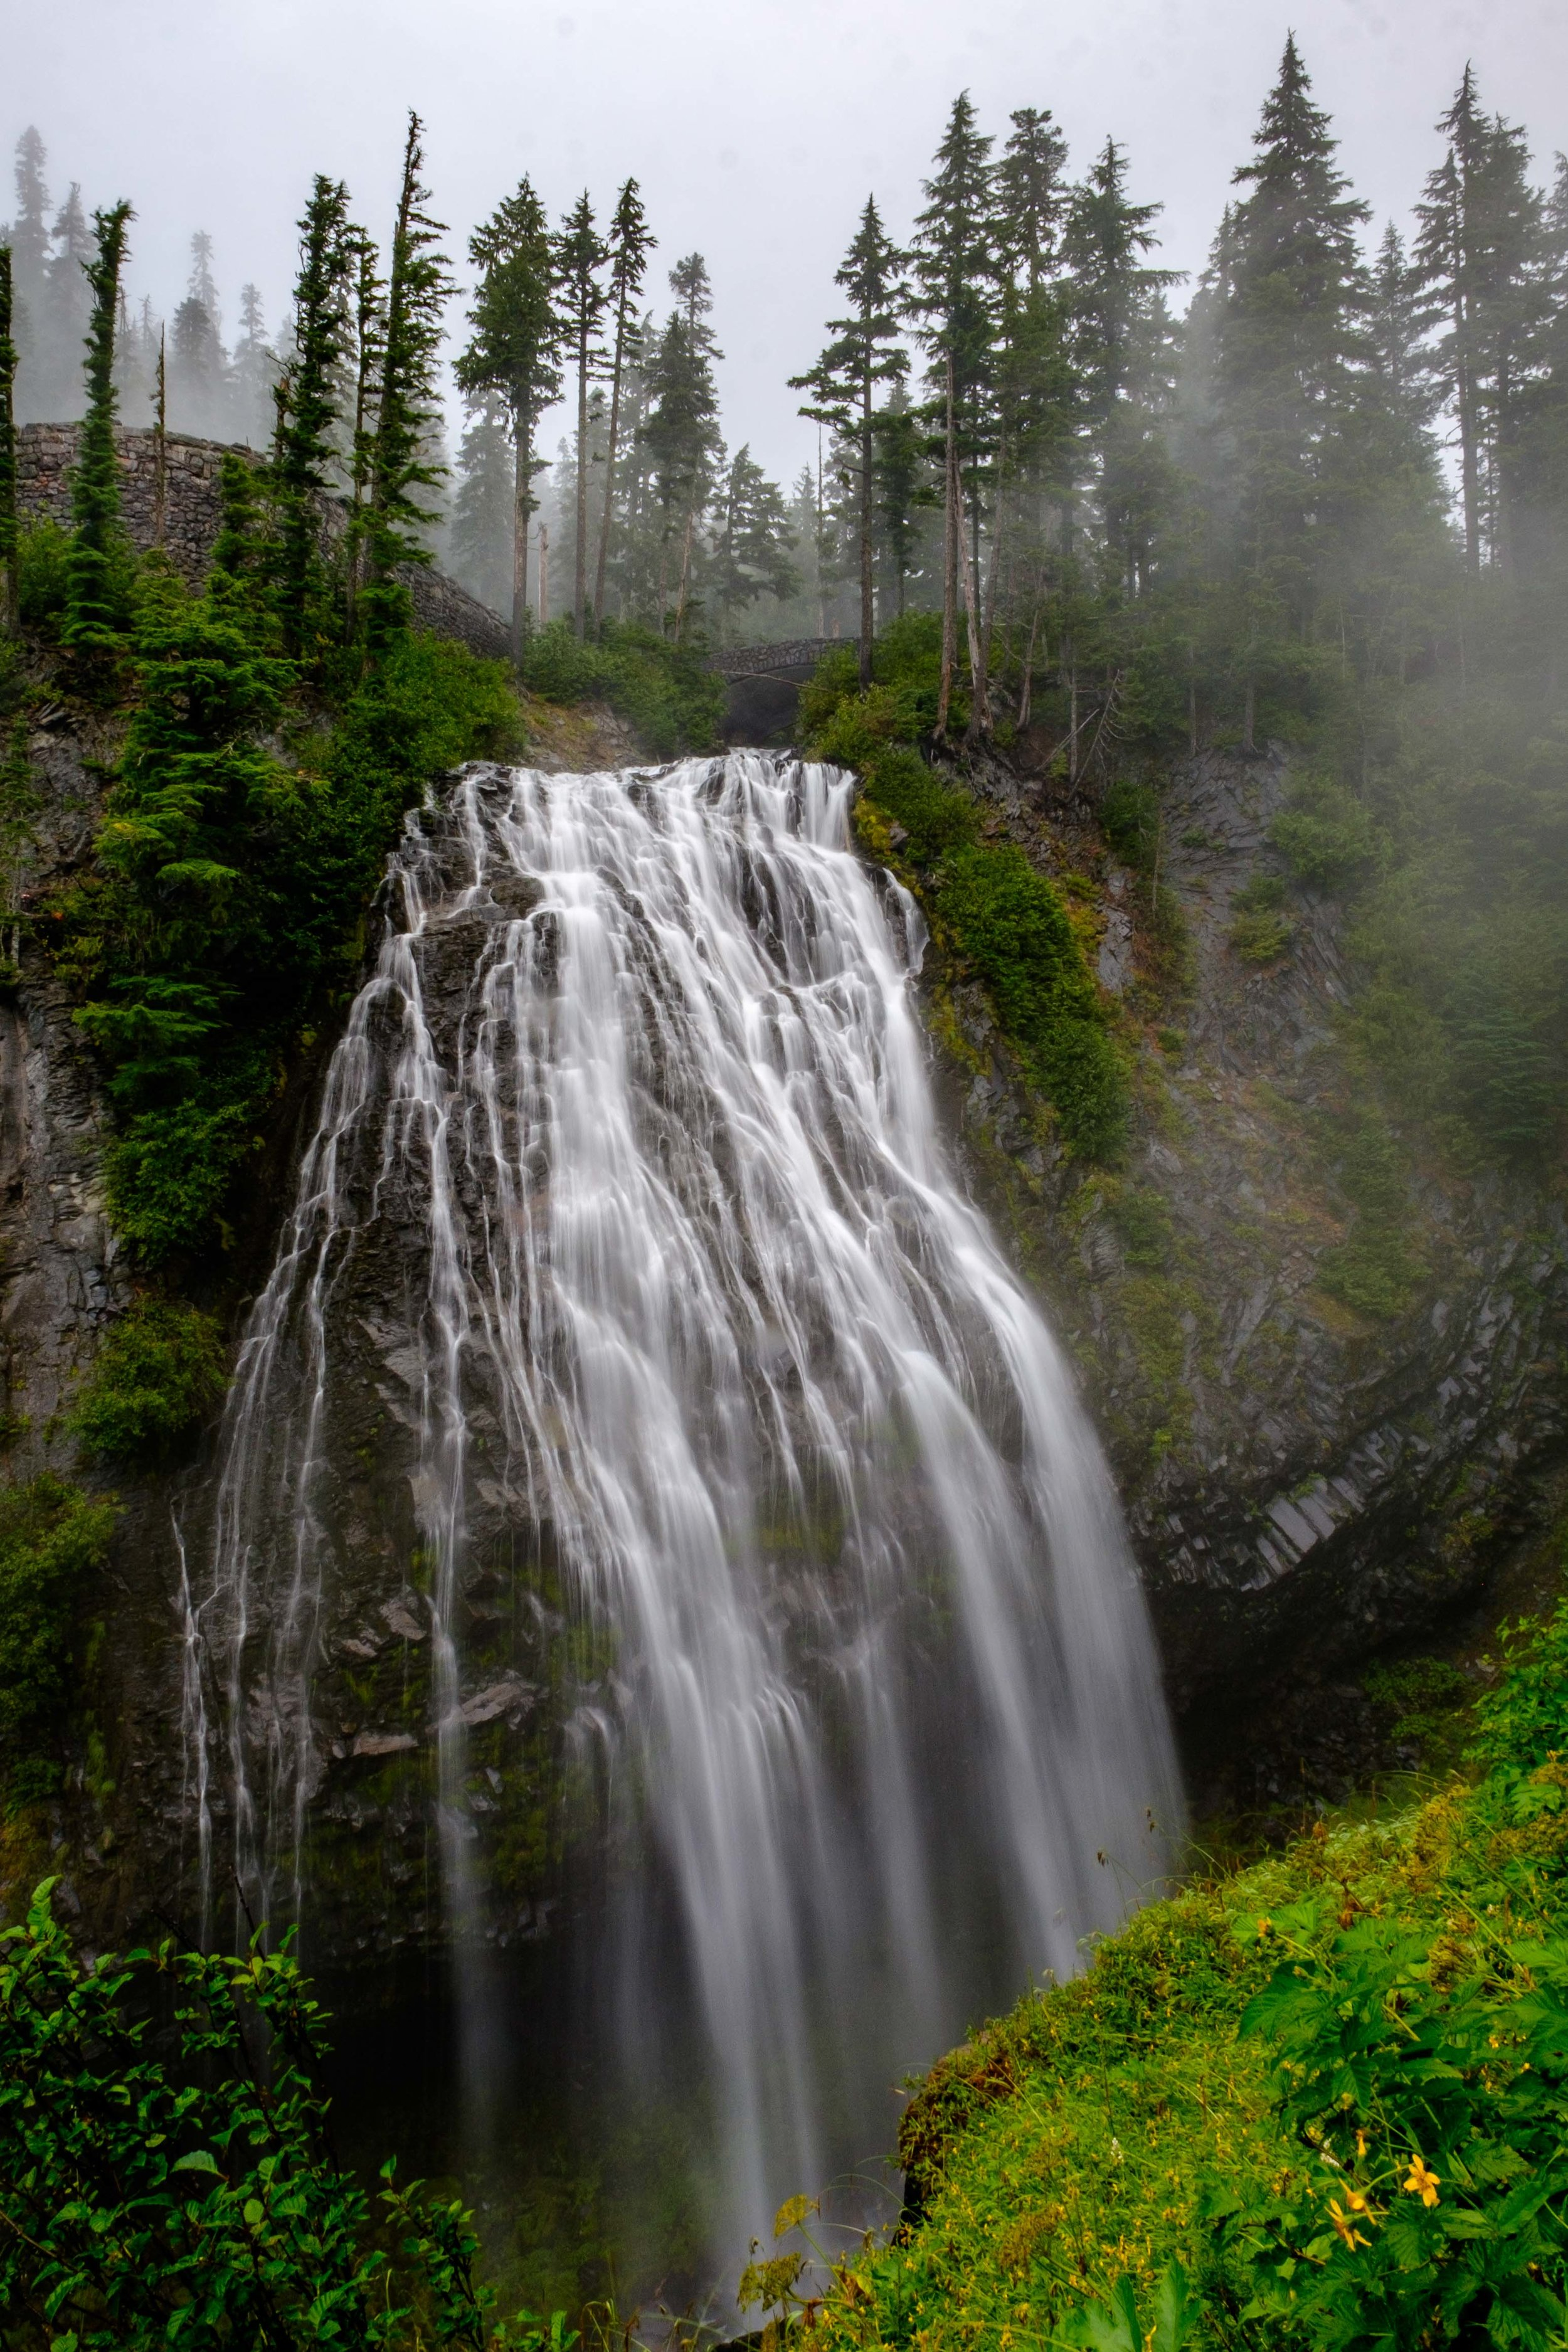 Two-tiered Narada Falls in Mount Rainier National Park as seen from the overlook.